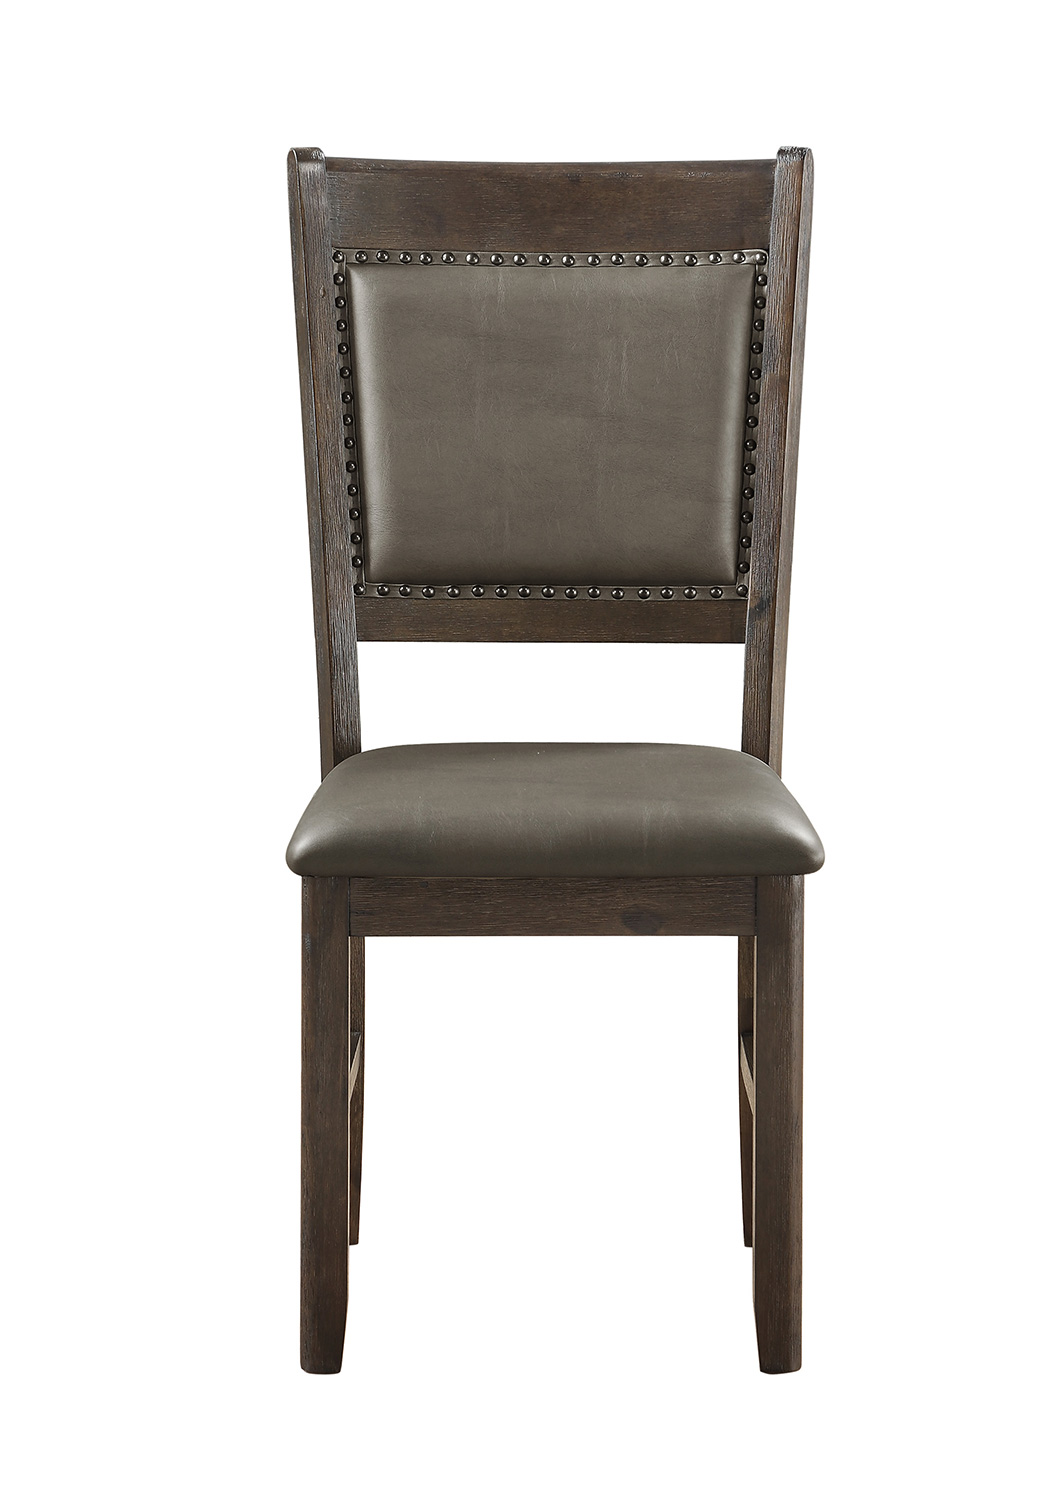 Homelegance Brim Side Chair - Brown Cherry